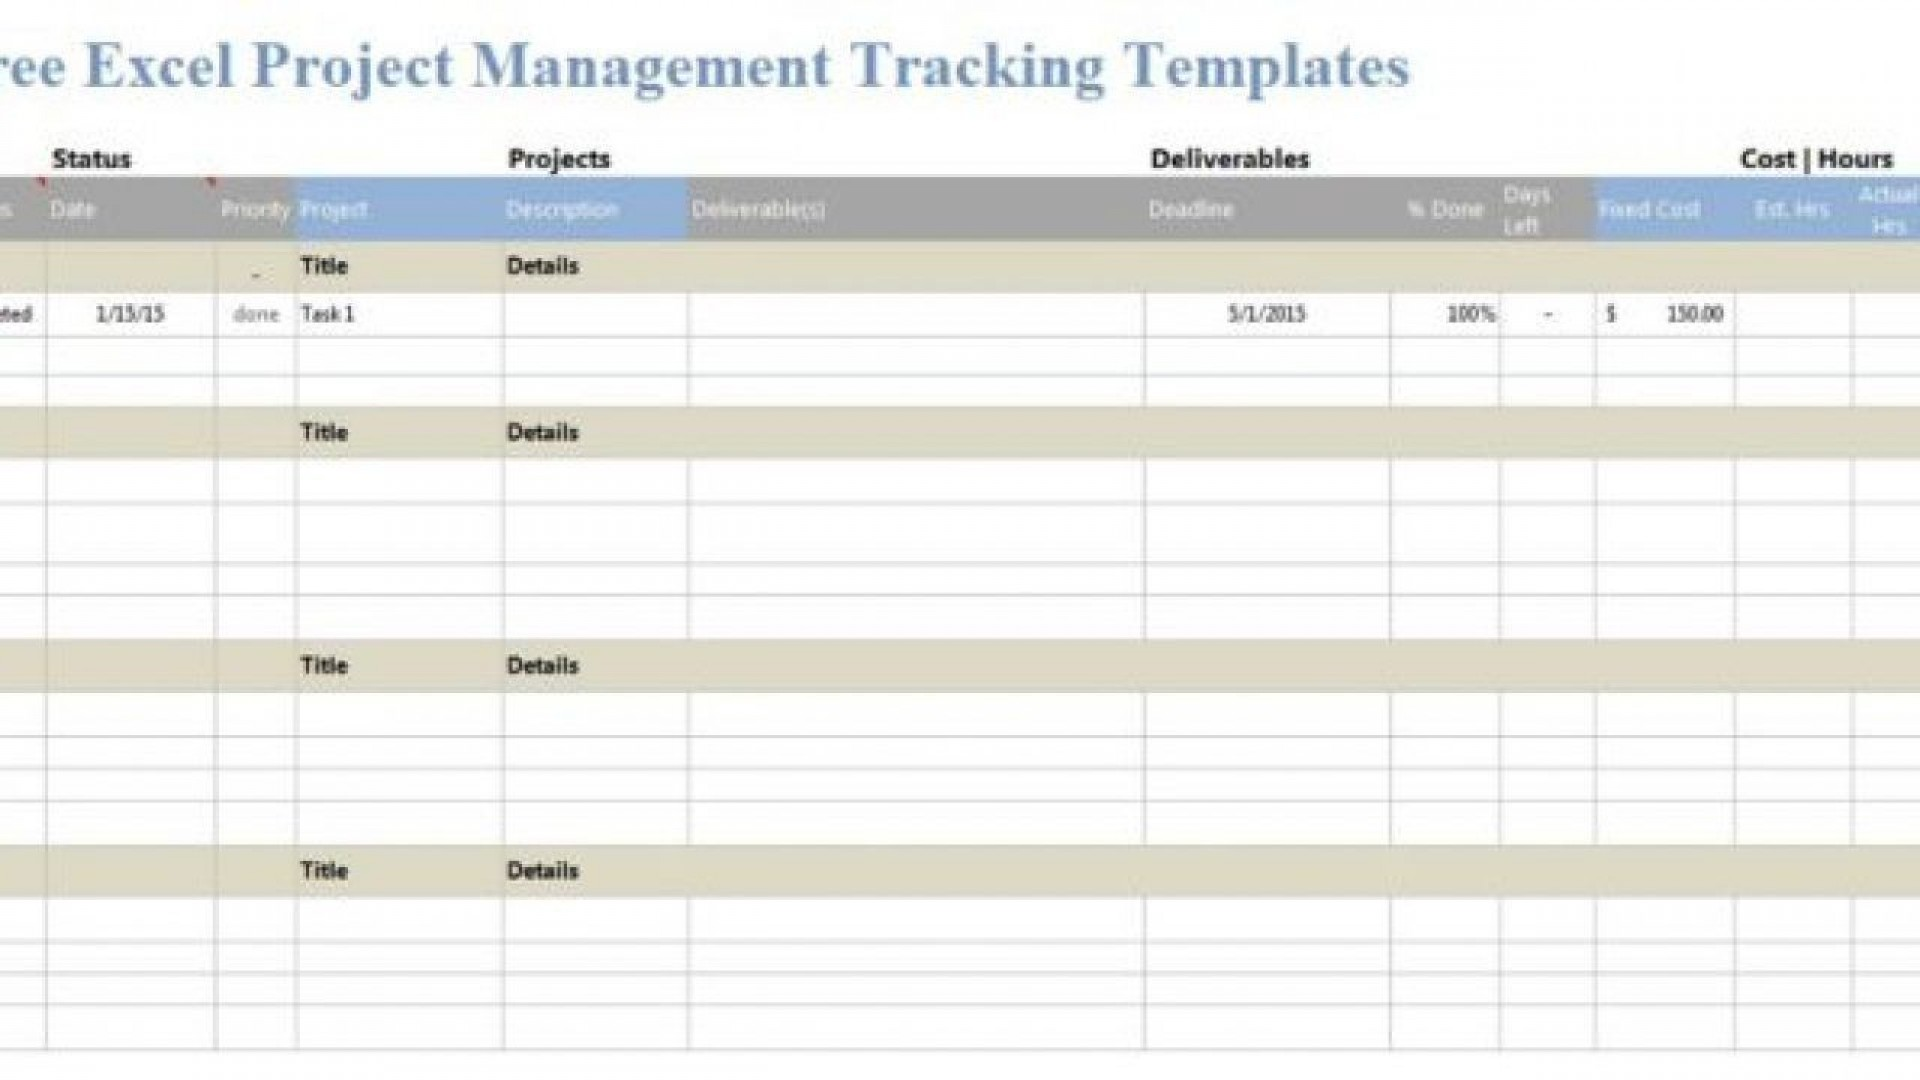 006 Beautiful Excel Project Management Template Concept  With Dependencie Gantt Schedule Creation Microsoft Office1920